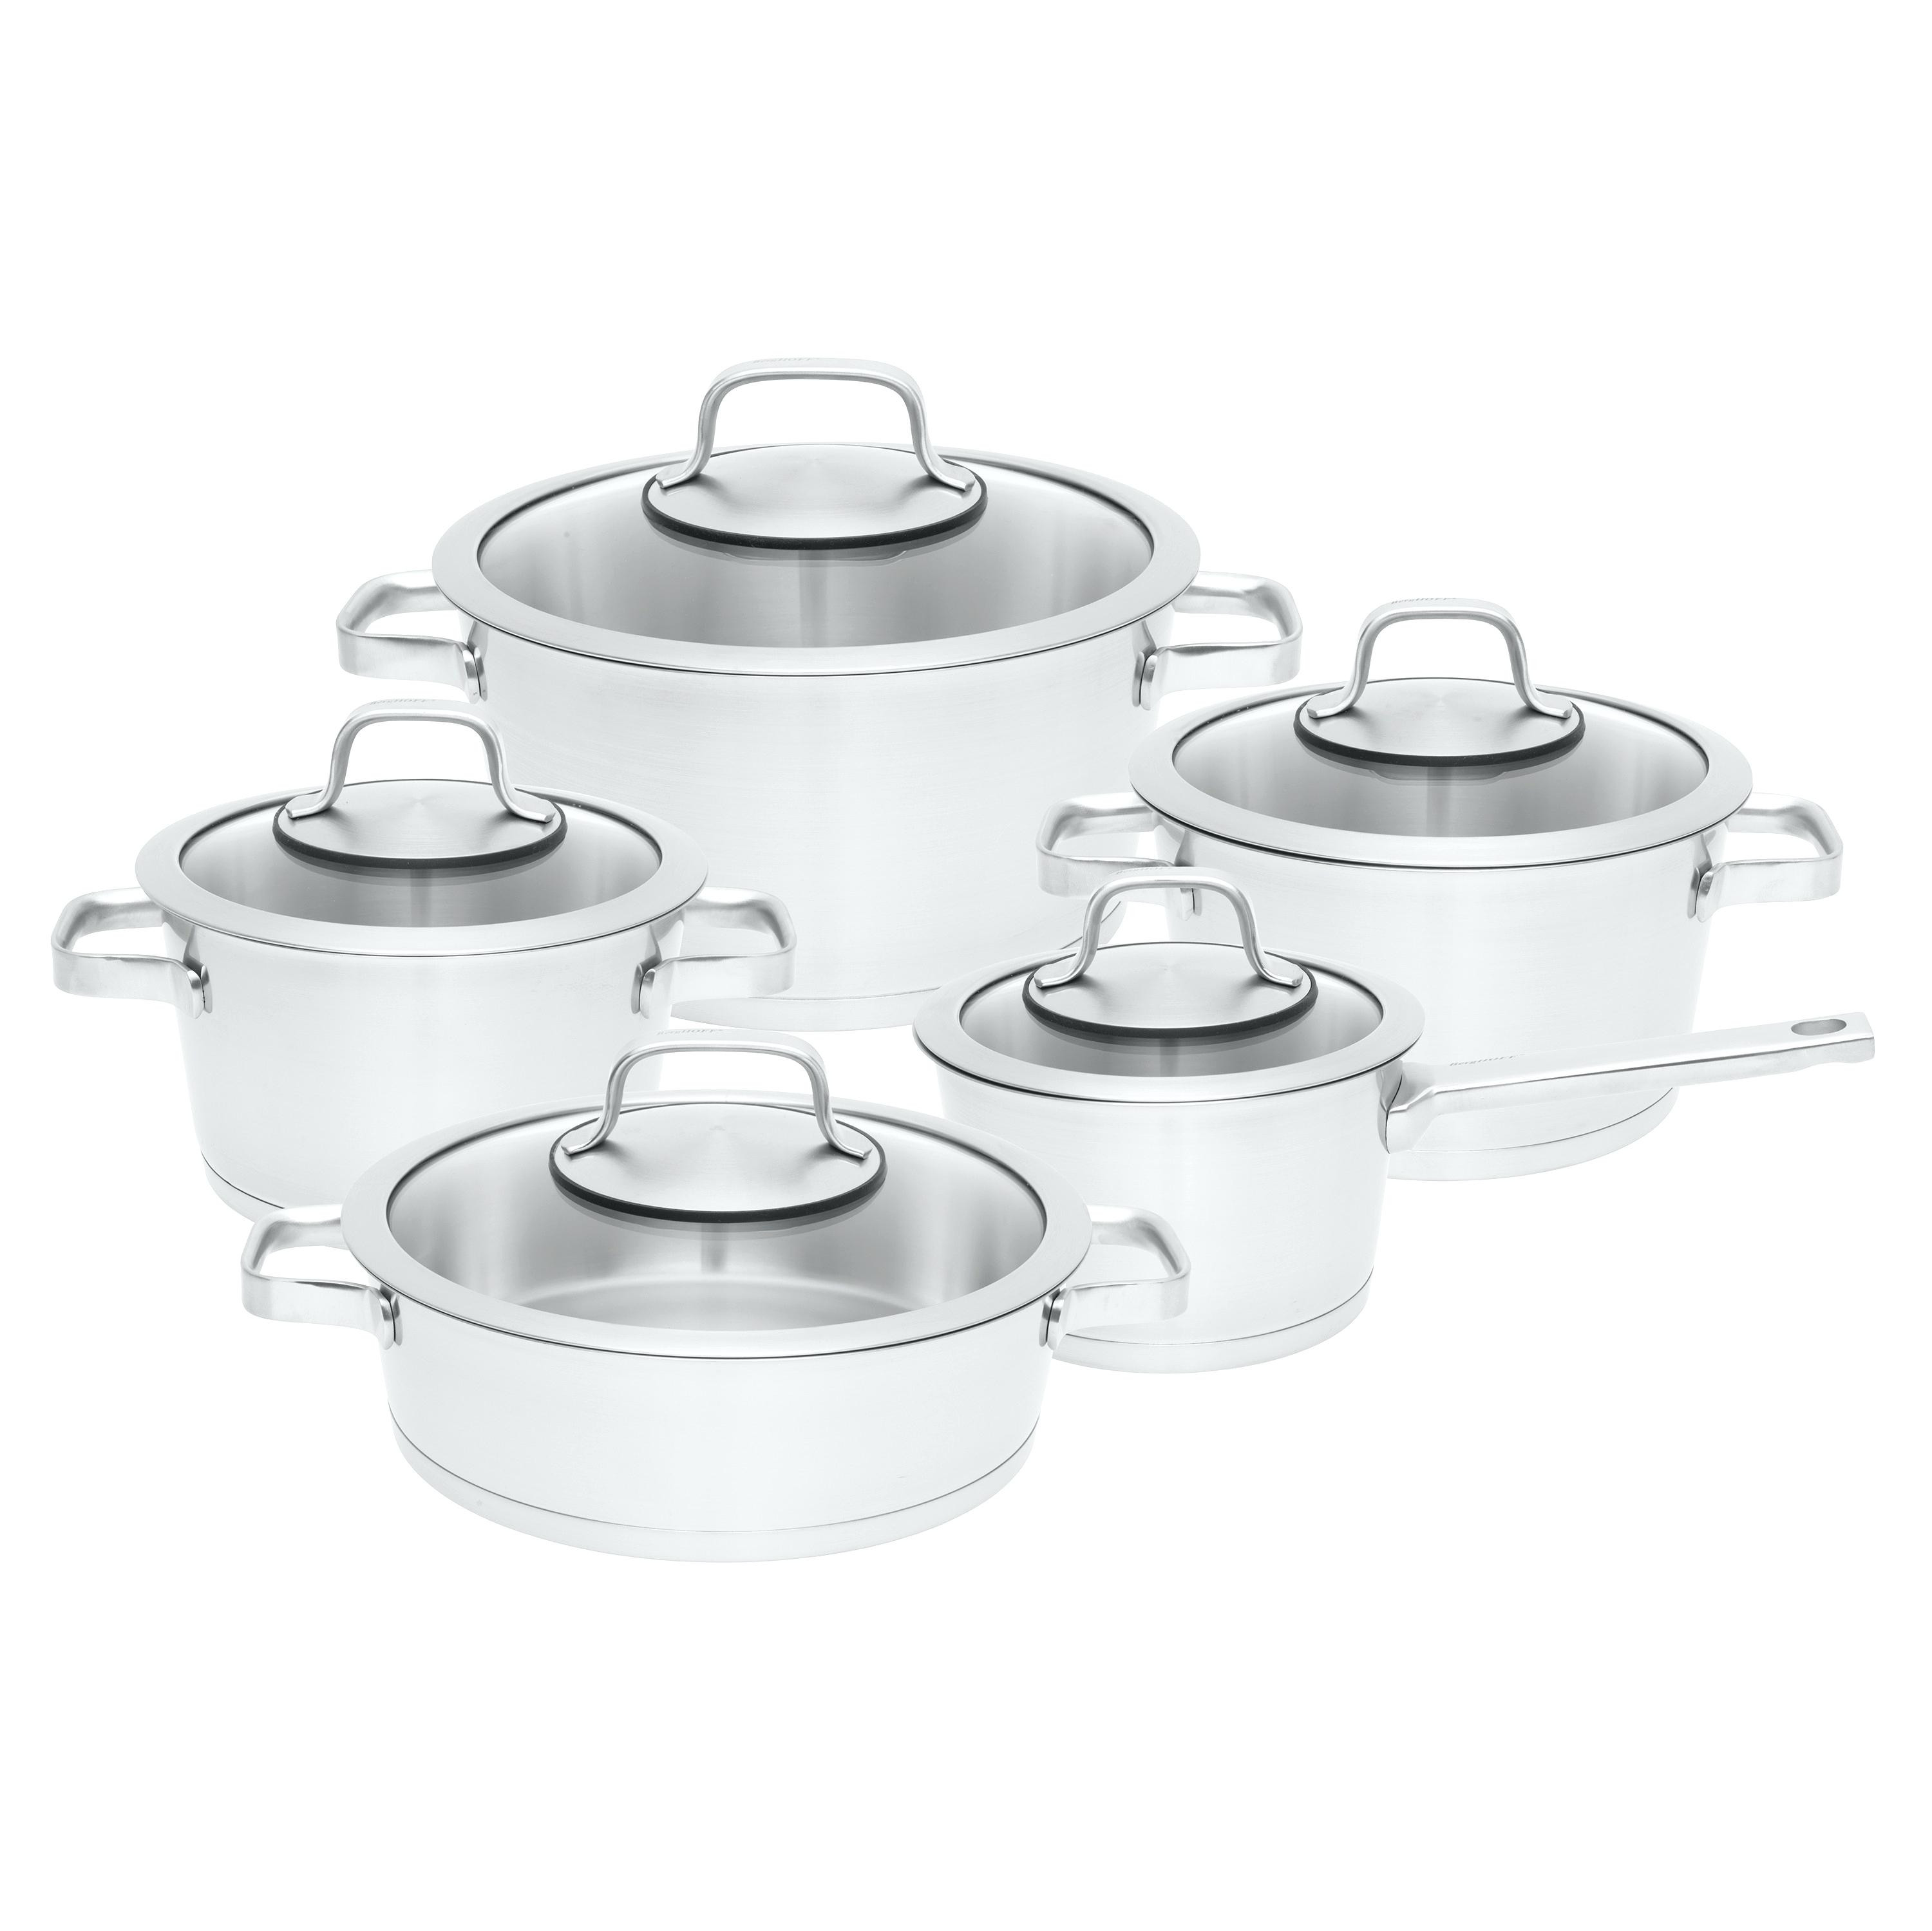 belgique cookware set hard anodized 11 pc only at macys pan 5 piece